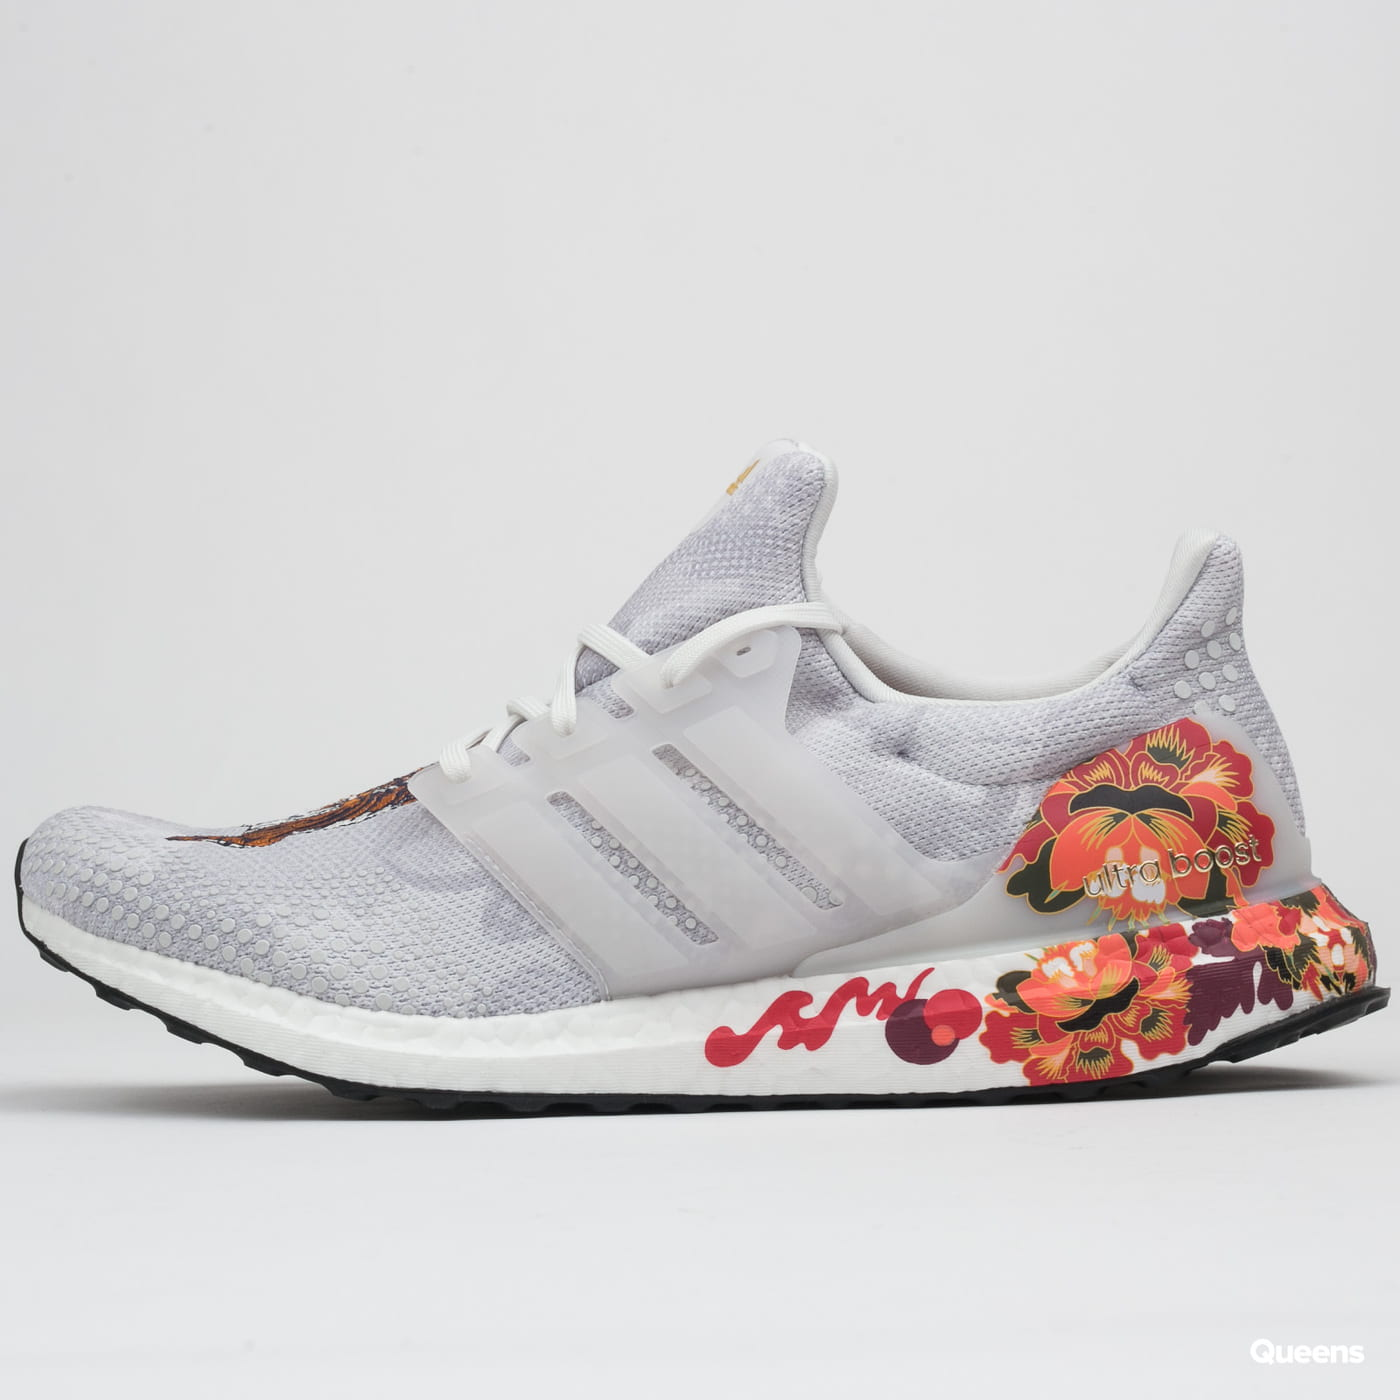 adidas Performance UltraBoost DNA crywht crywht goldmet